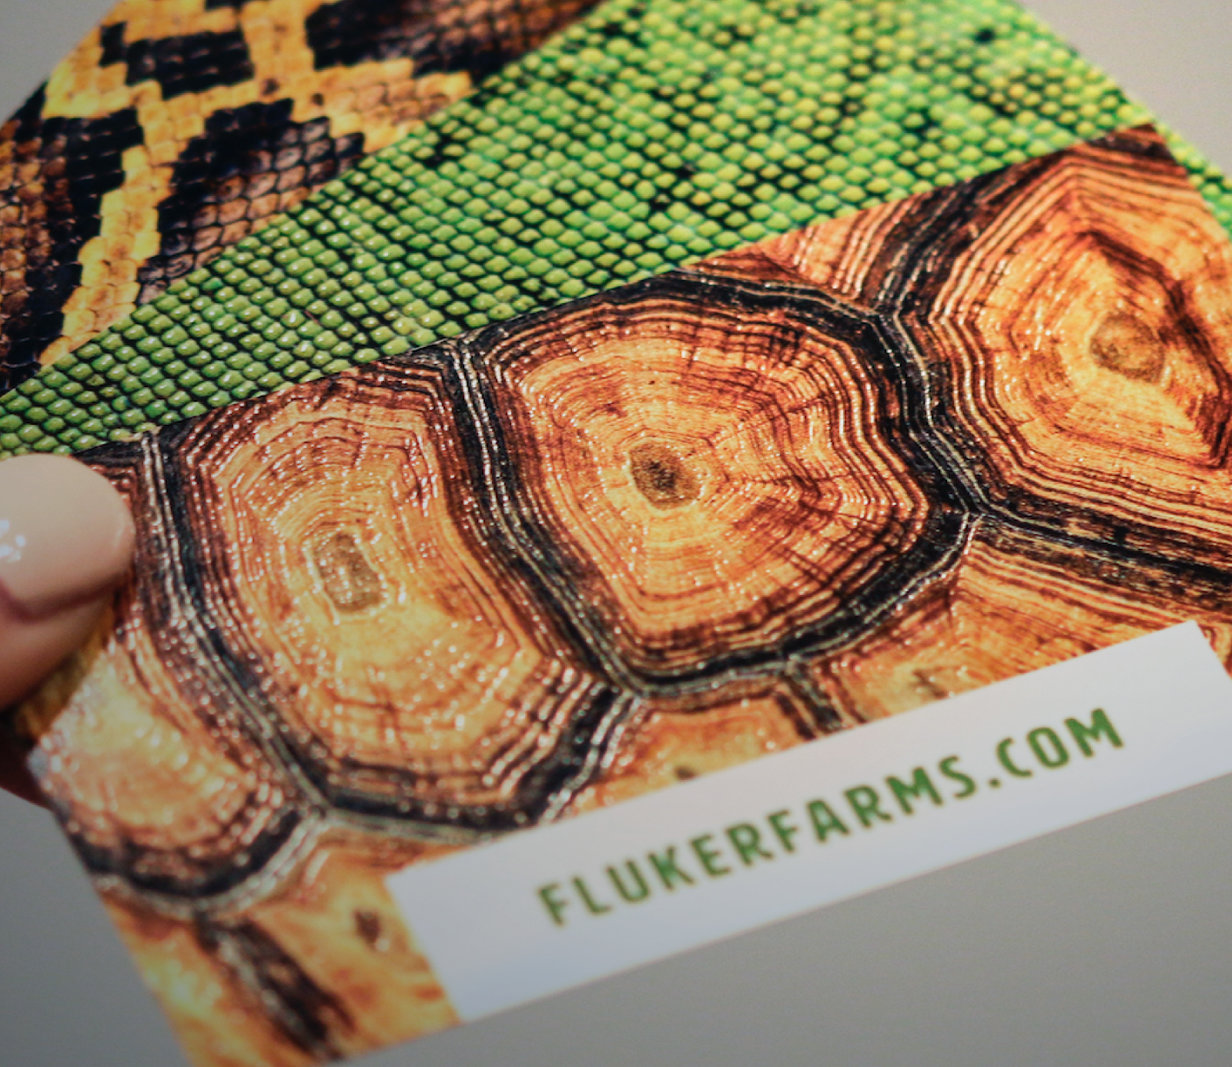 Fluker Farms Corporate Identity